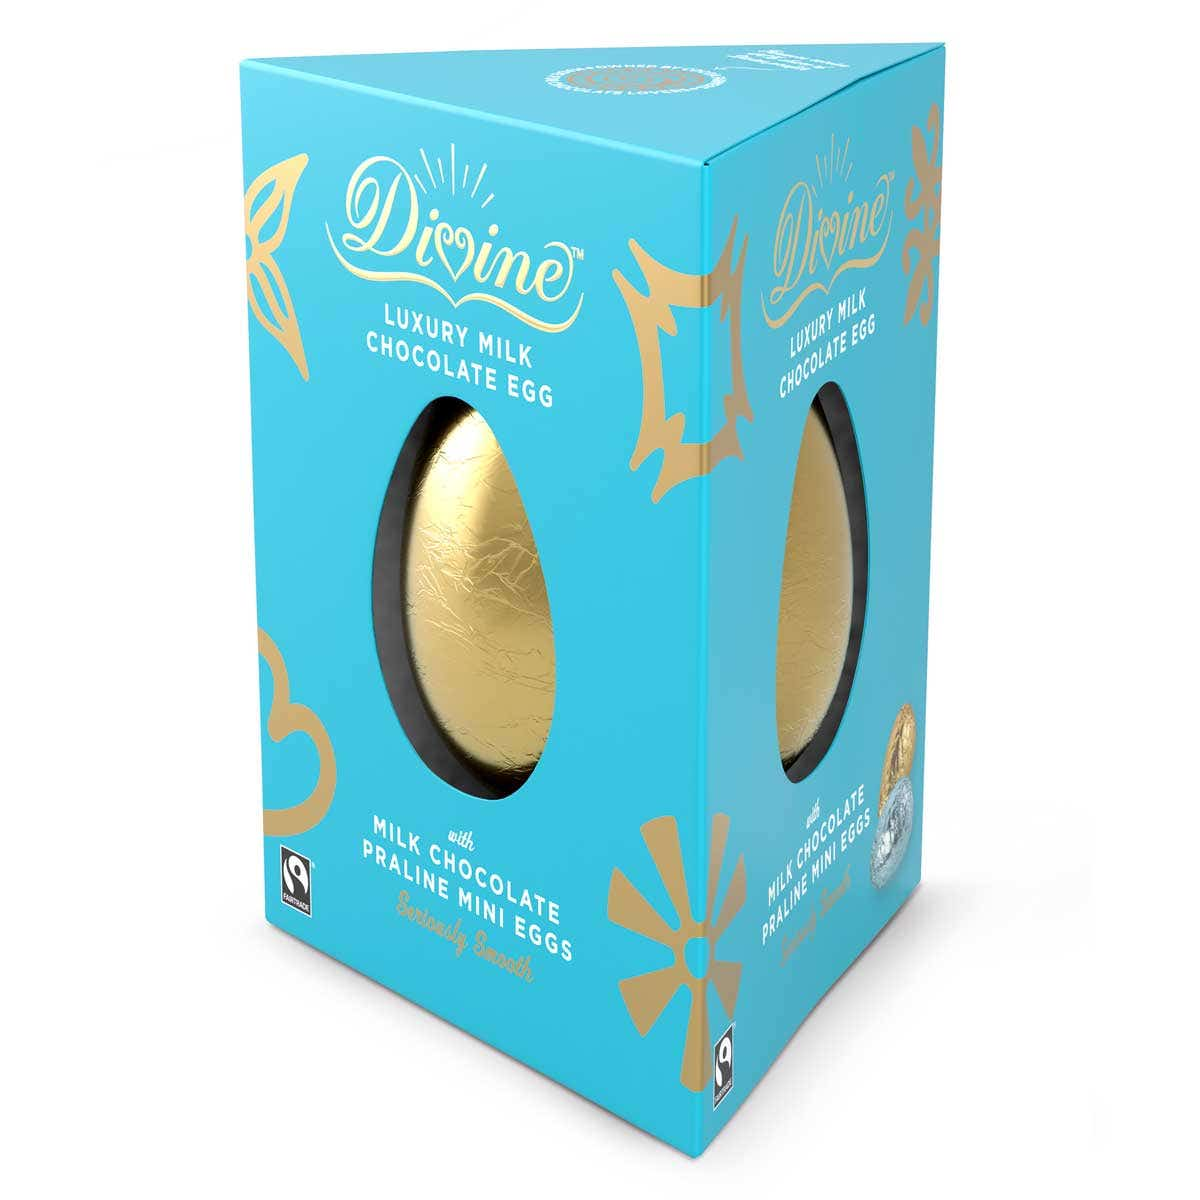 Divine Milk Chocolate Luxury Easter Egg with Praline Mini Eggs